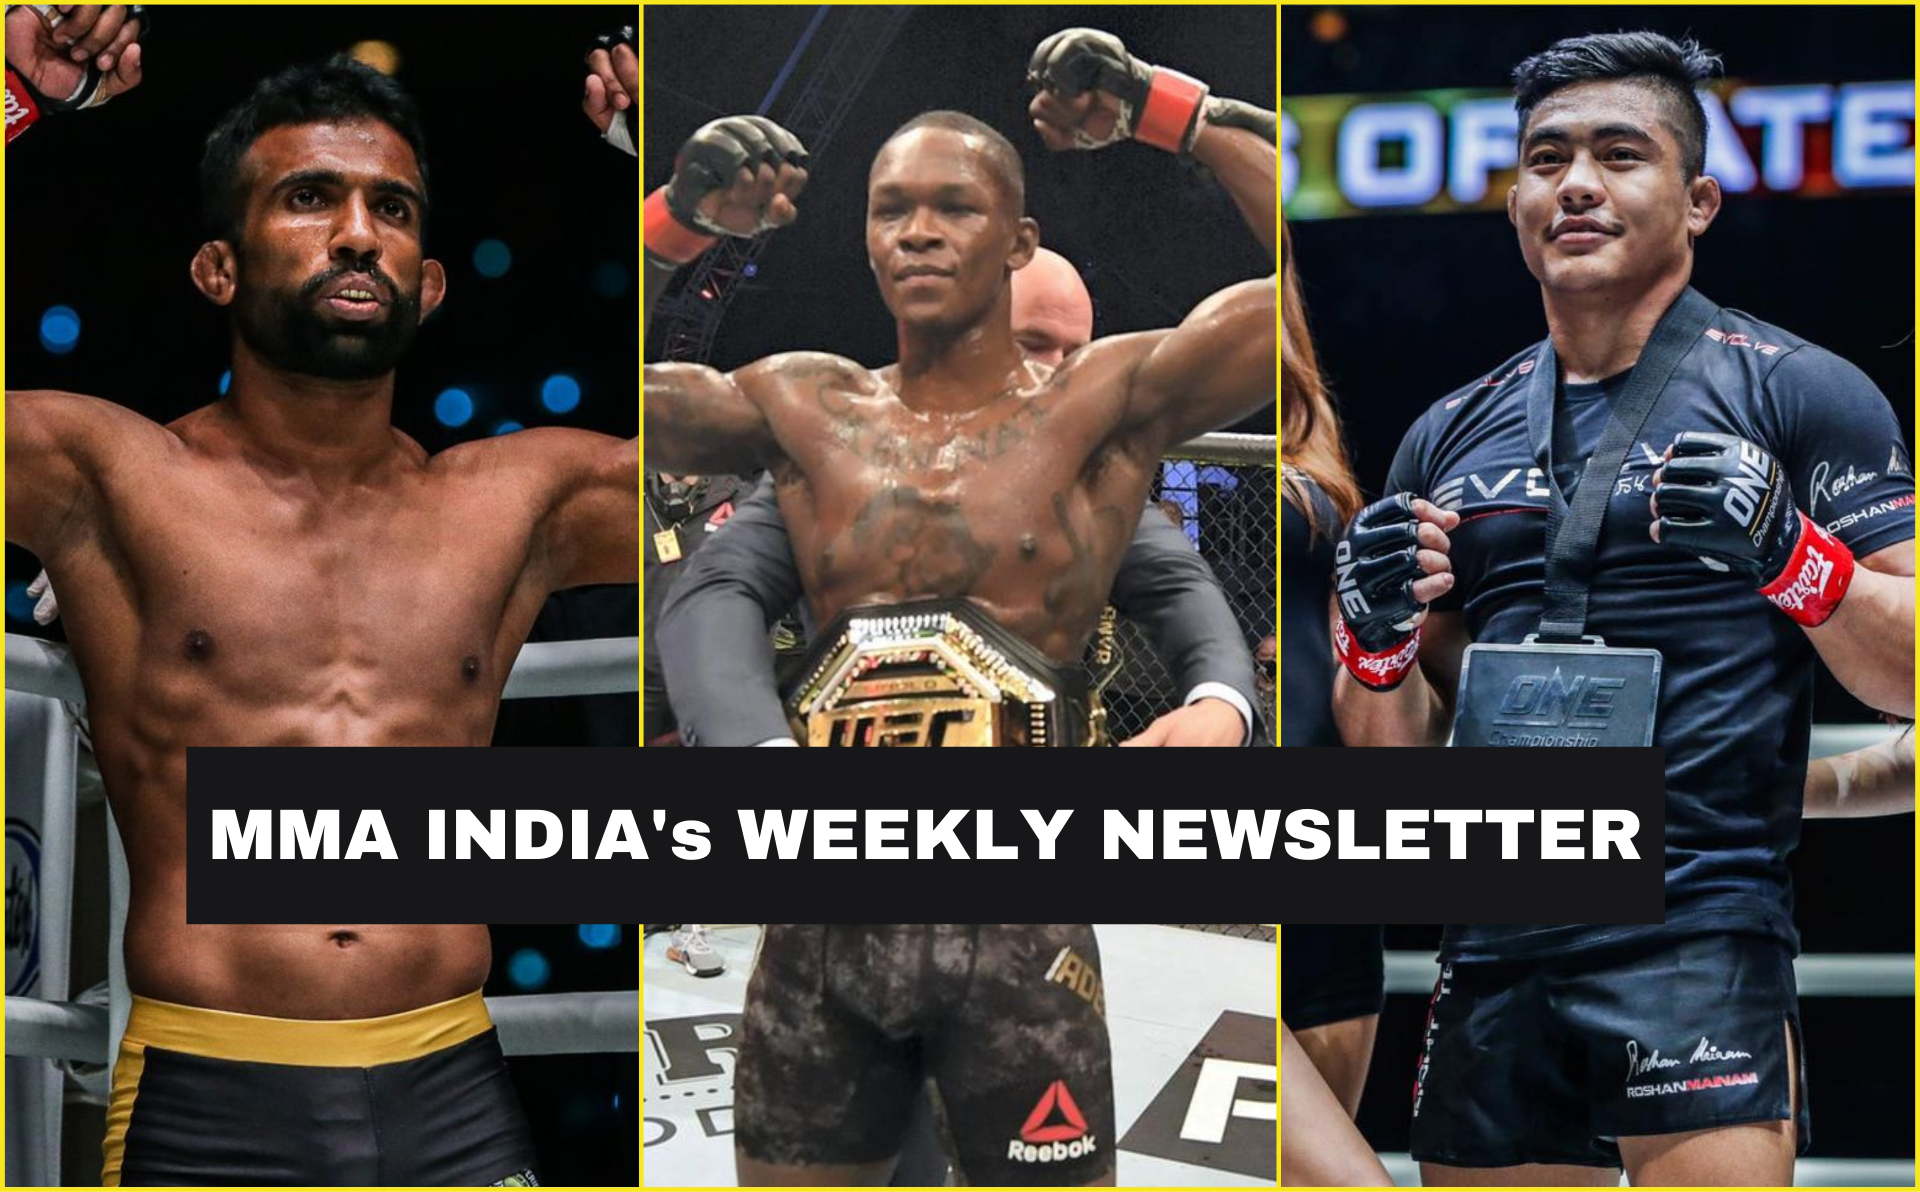 MMA India's Weekly Roundup (29 Sep-5 Oct): Rahul Raju, Roshan Mainam to fight on 9th Oct, UFC 253 sells 700,000 PPV buys - mma